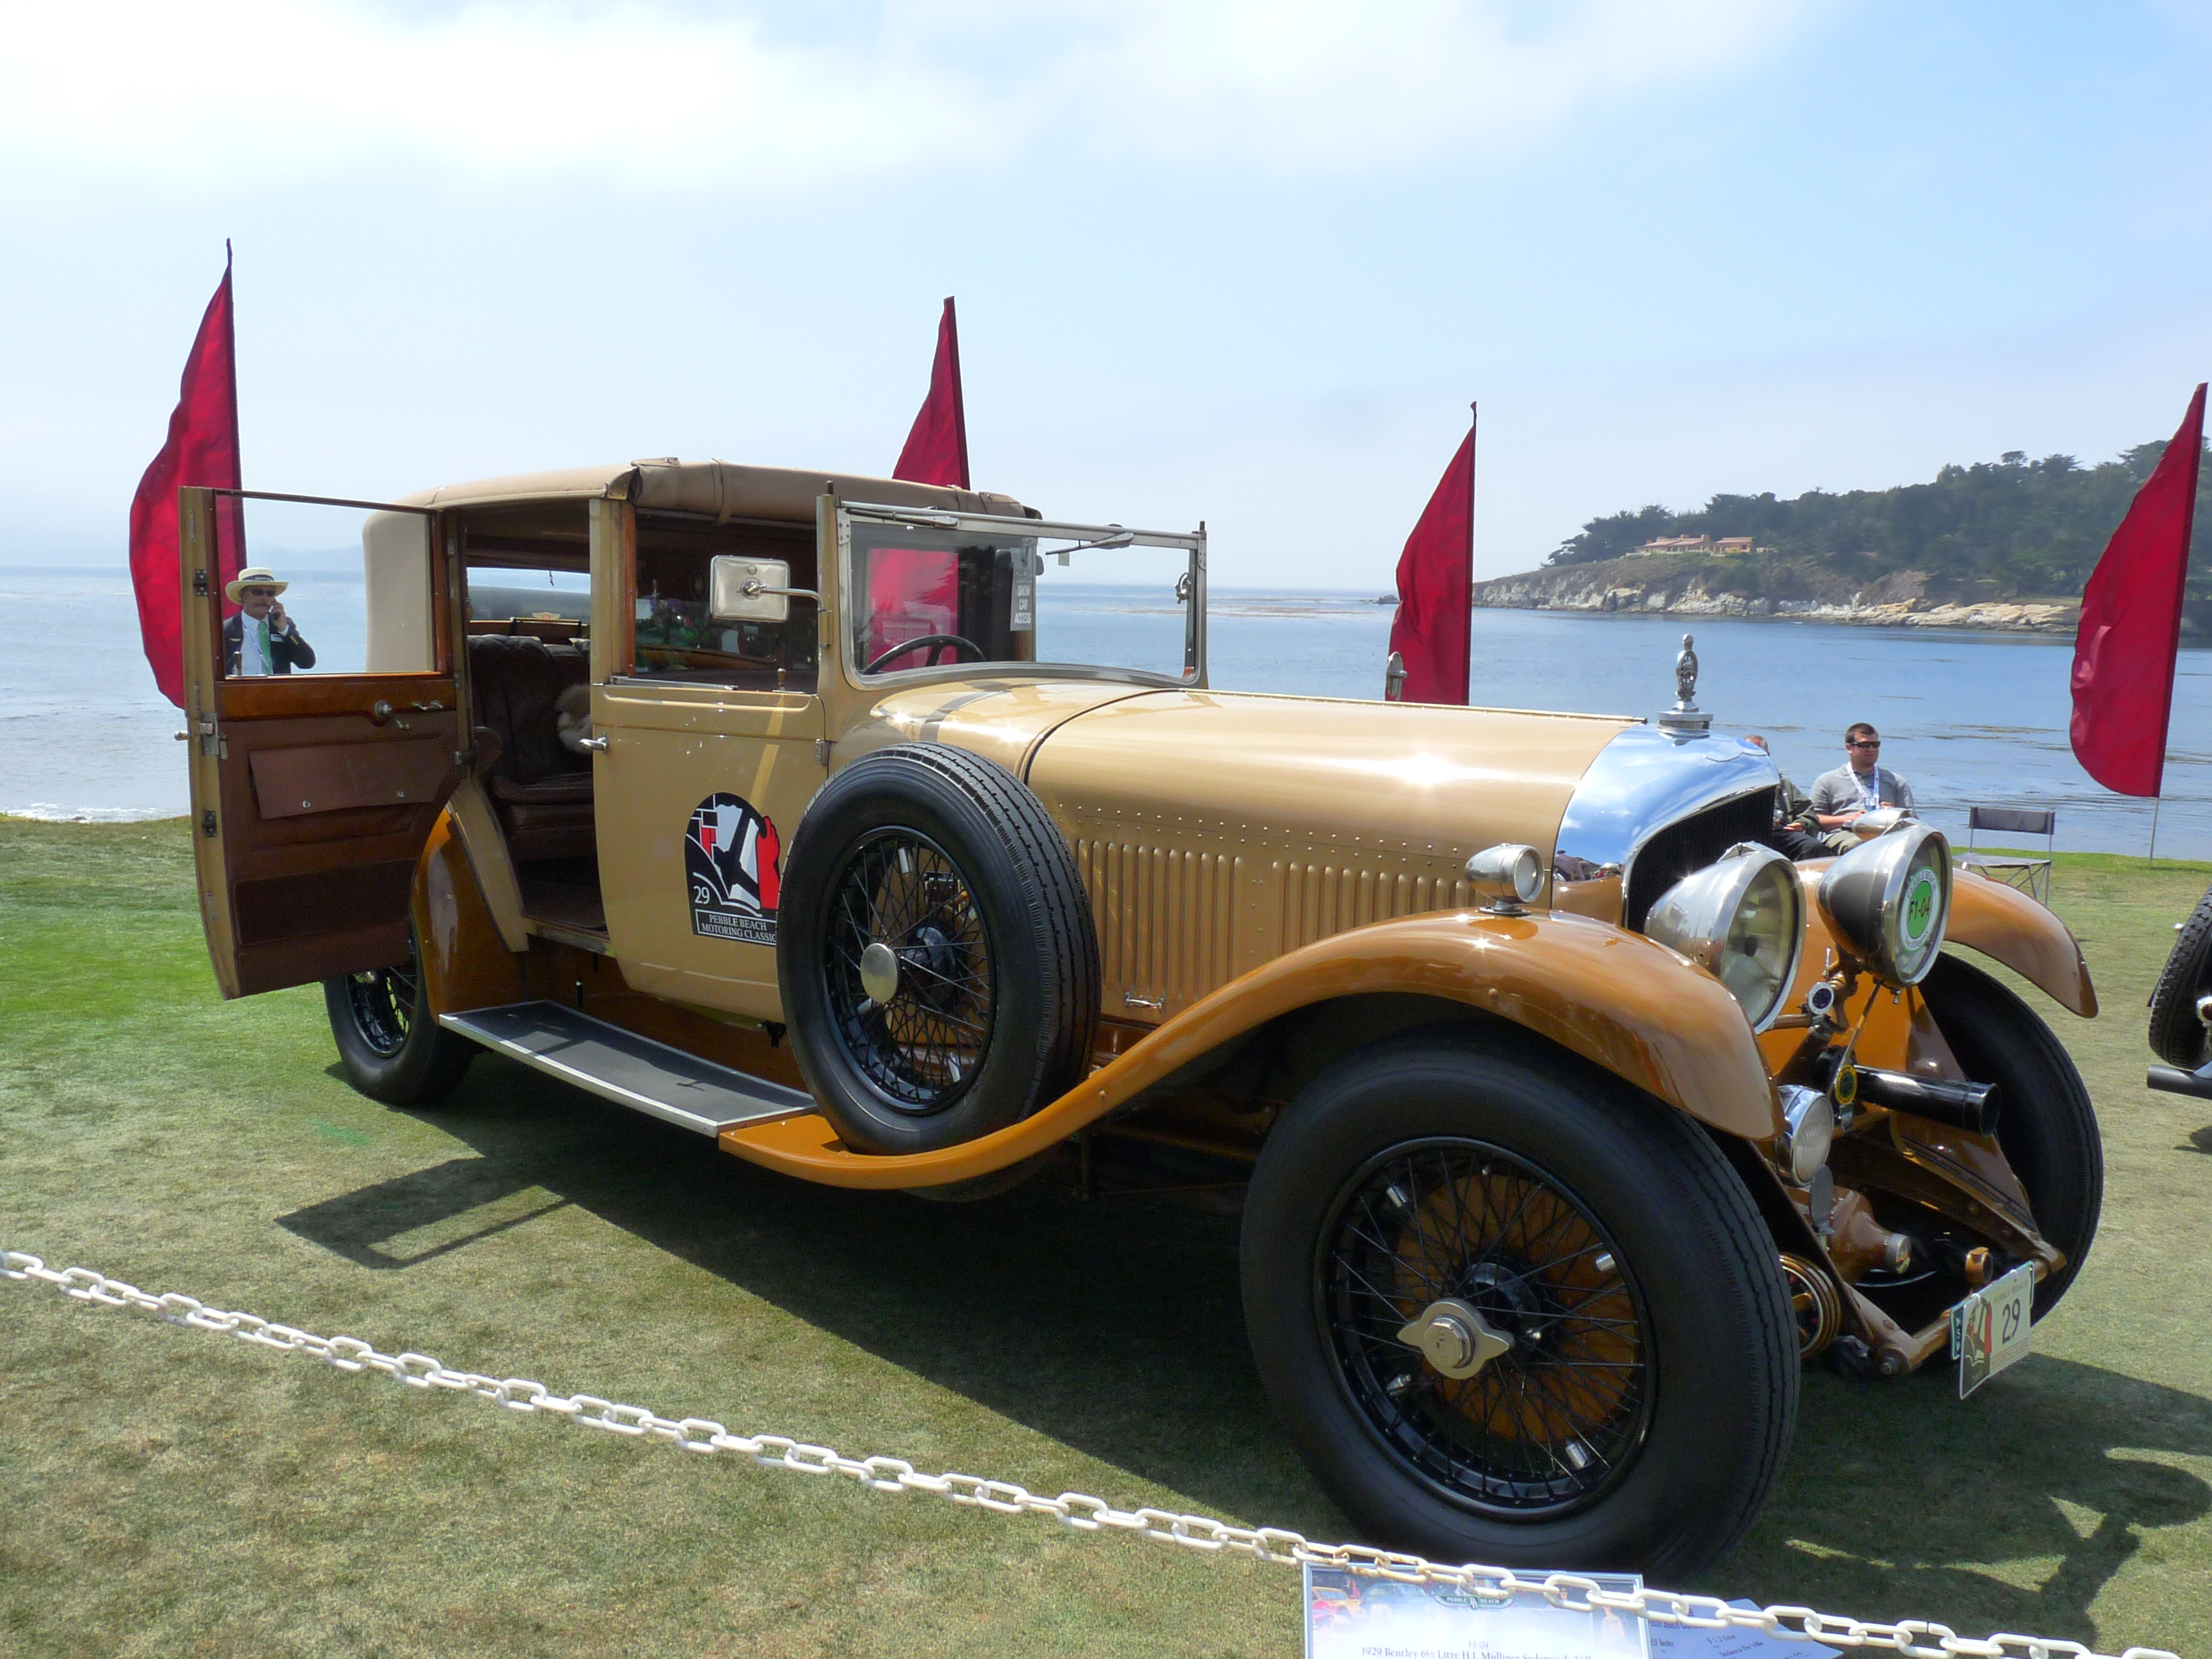 bentley gk with File 1929 Bentley 6 12 Litre Hj Mulliner Sedanca De Ville on 1931 Bentley 4 12 Litre Sc Blower Sports 23 Seater Boattail furthermore Hyundai Coupe Tiburon 2007 furthermore 11314 in addition 271348 likewise Dan Xe Sang Thap Tung Dai Gia Xem Chung Ket Hoa Hau Viet Nam 2016 20160828234314533.